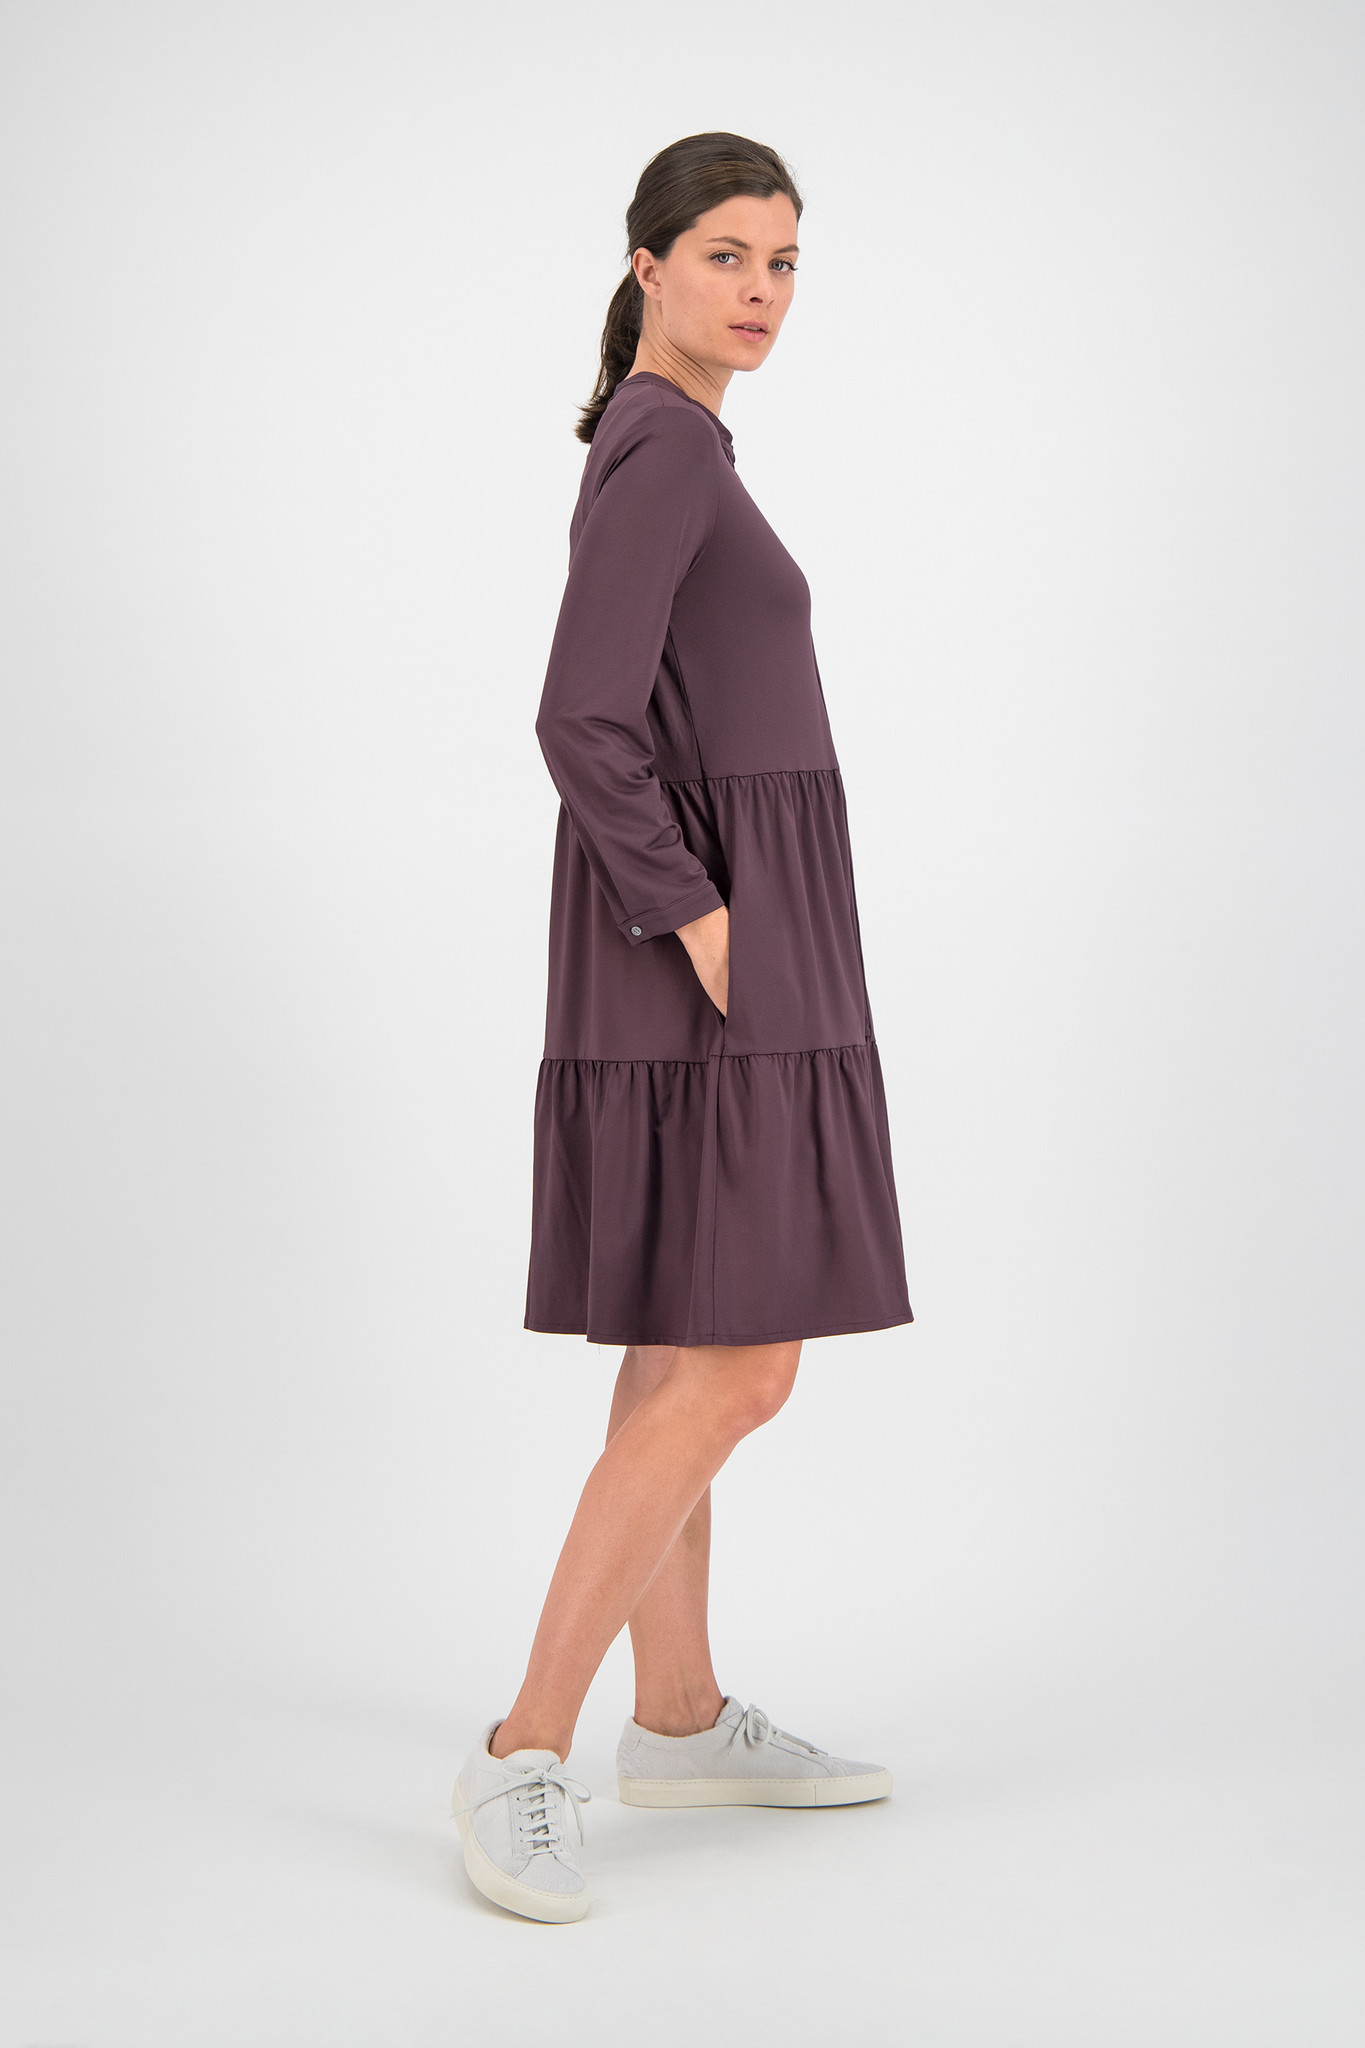 SYLVER Silky Jersey Blouse - Choco Wine